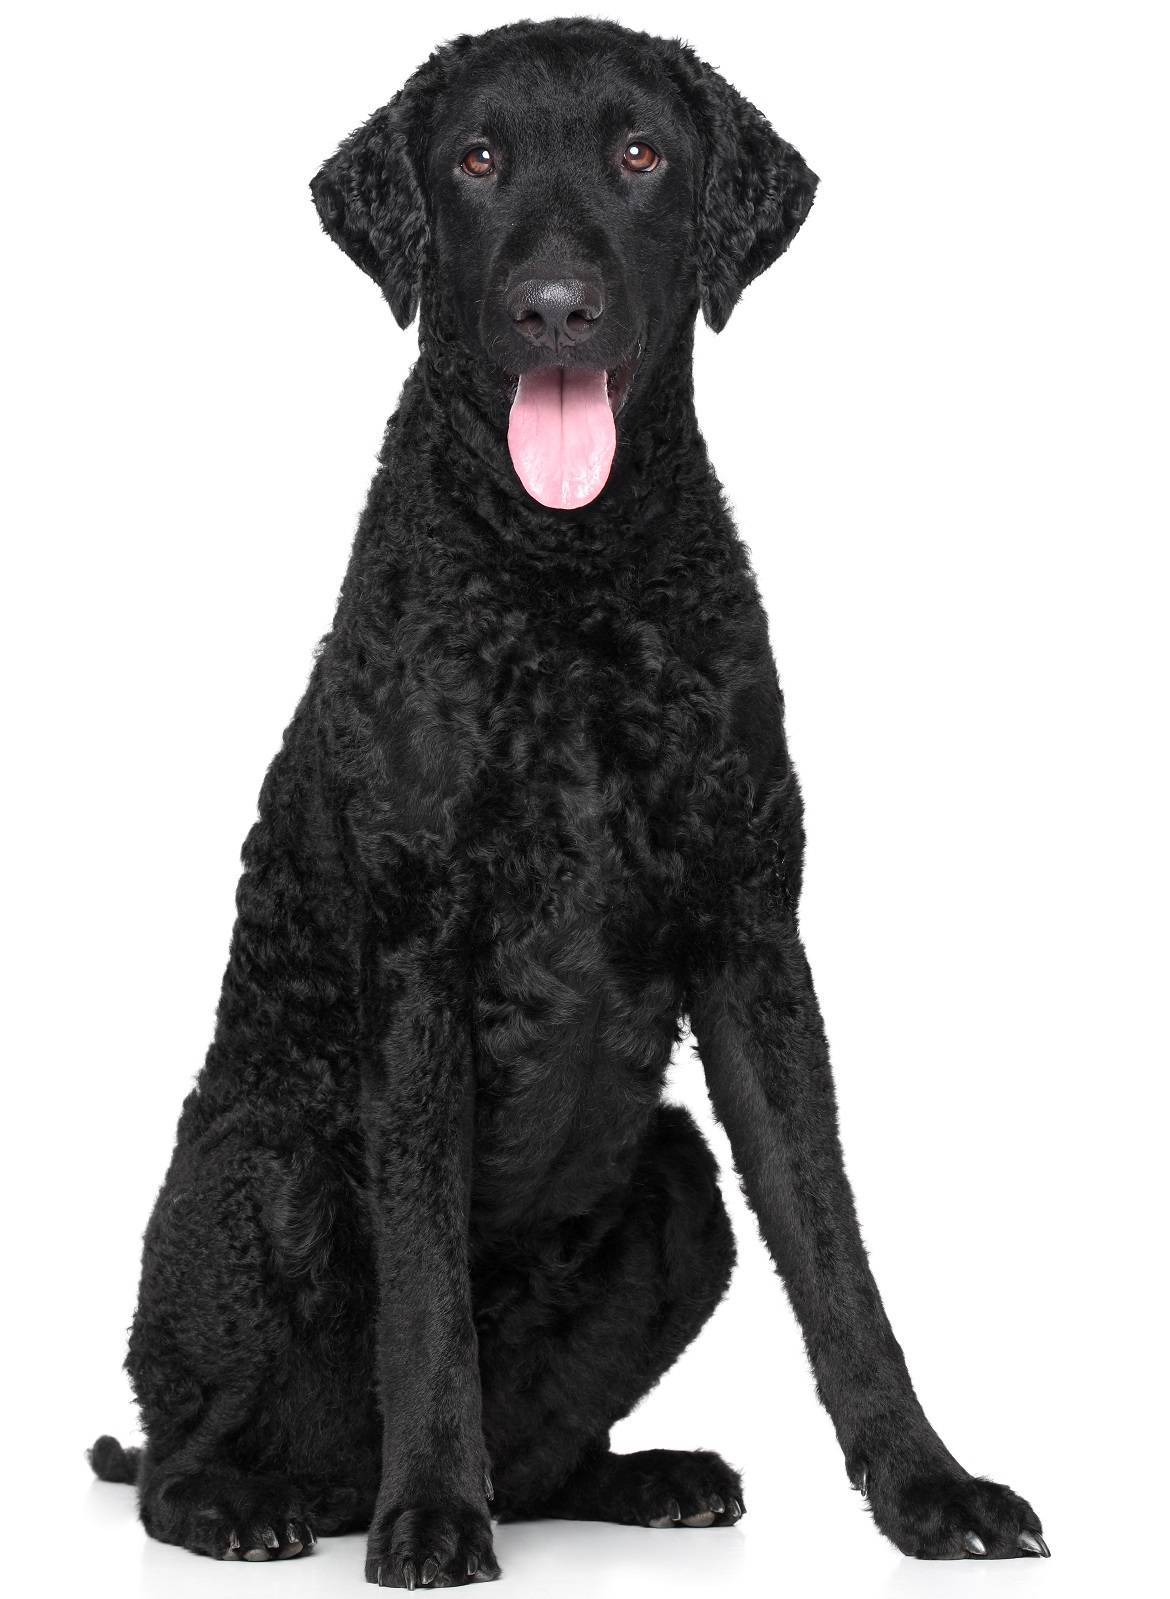 Curly-Coated Retriever Breed